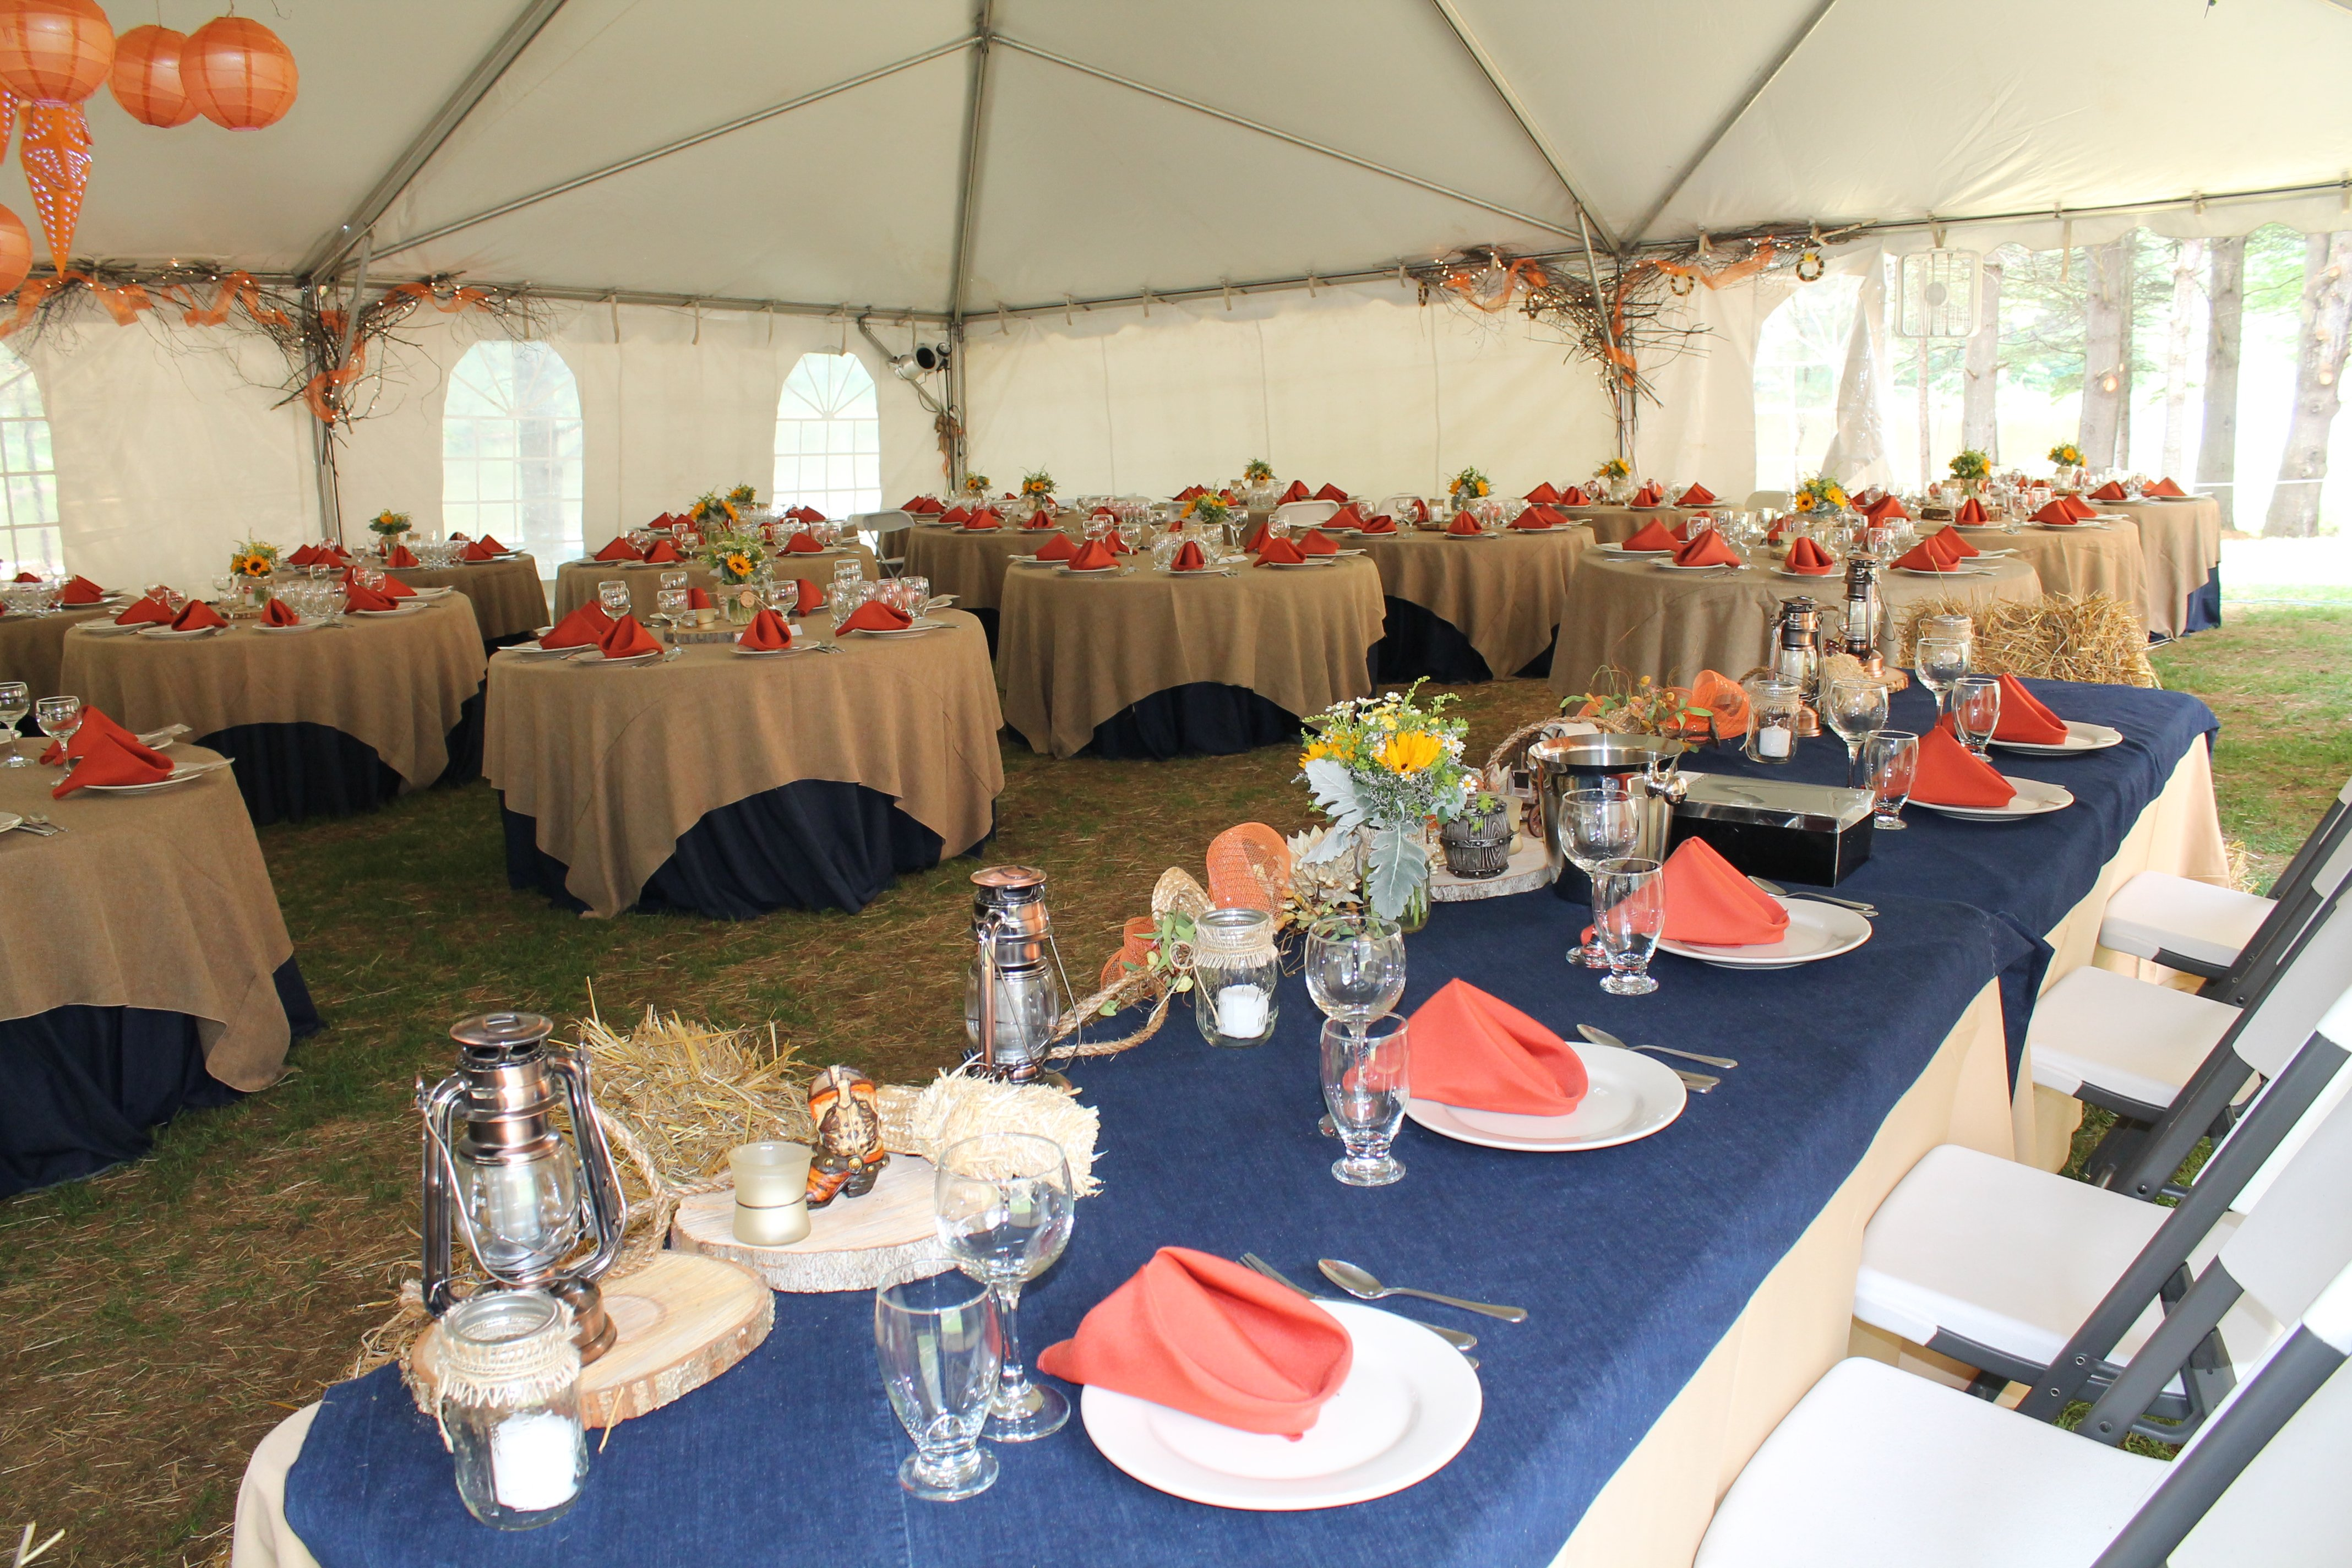 Choose your tent to make the reception truly all about you.